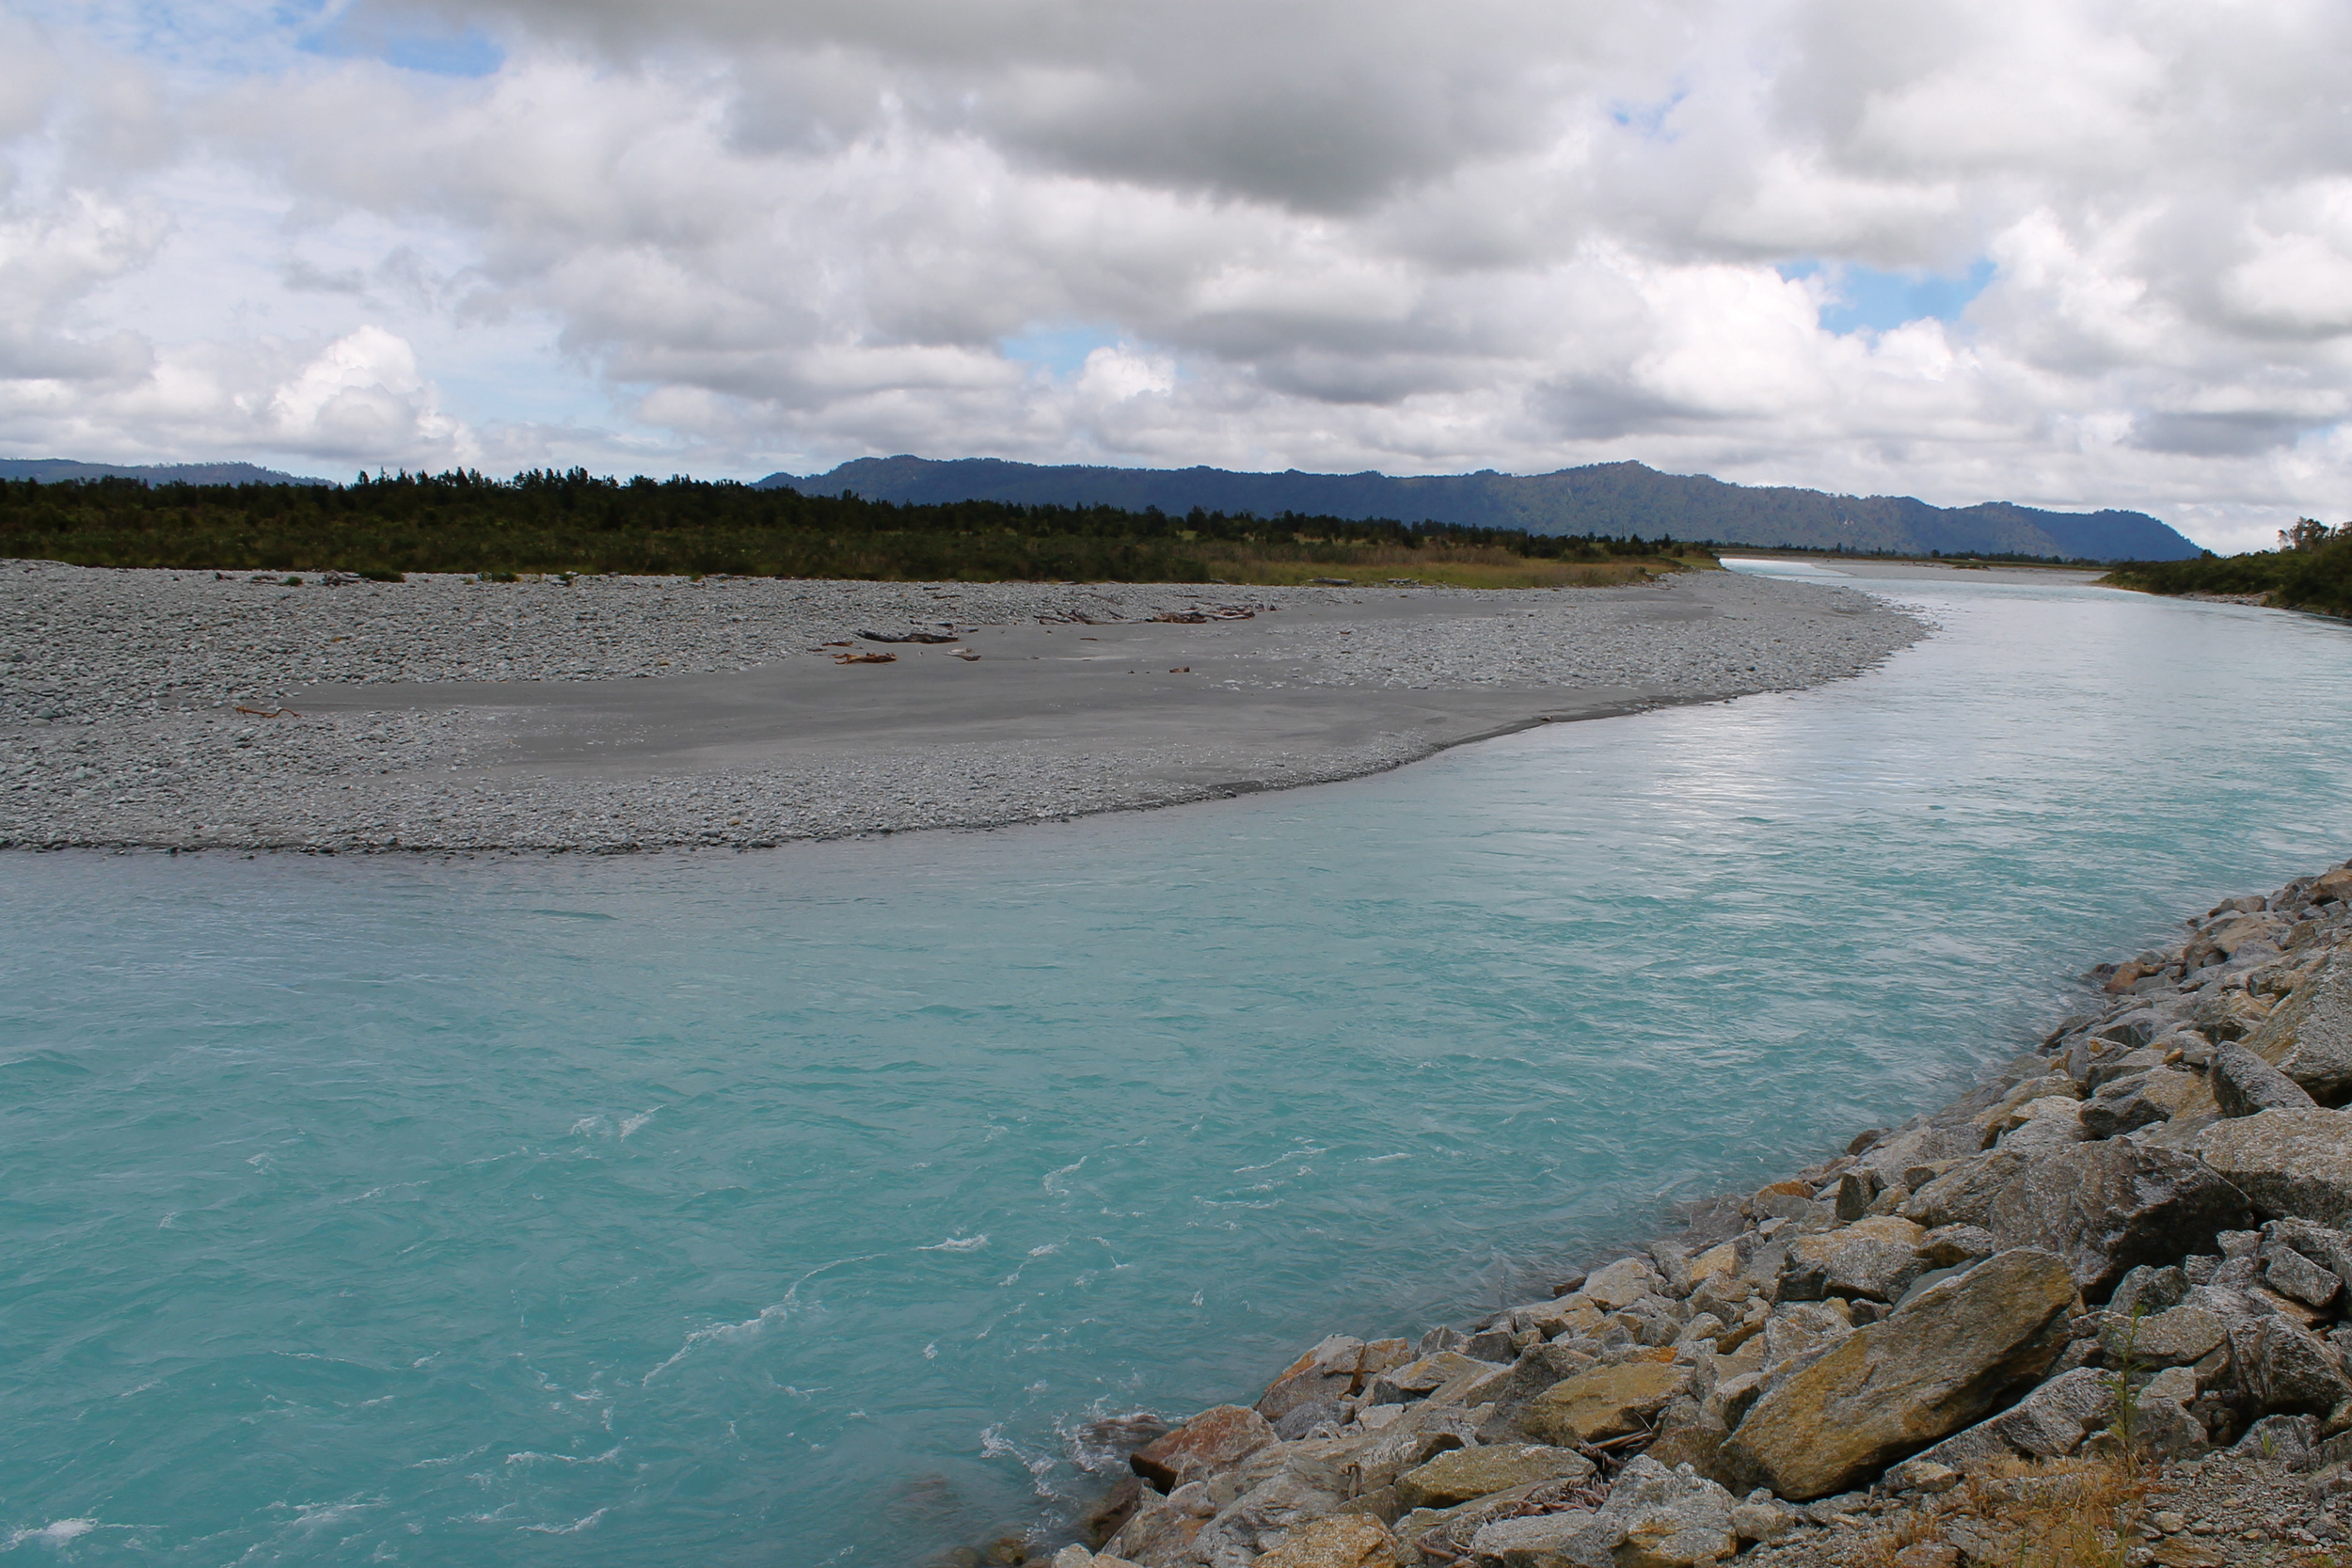 Tiny glacier rock particles mixed in the water creates theblue Gatoradewater.